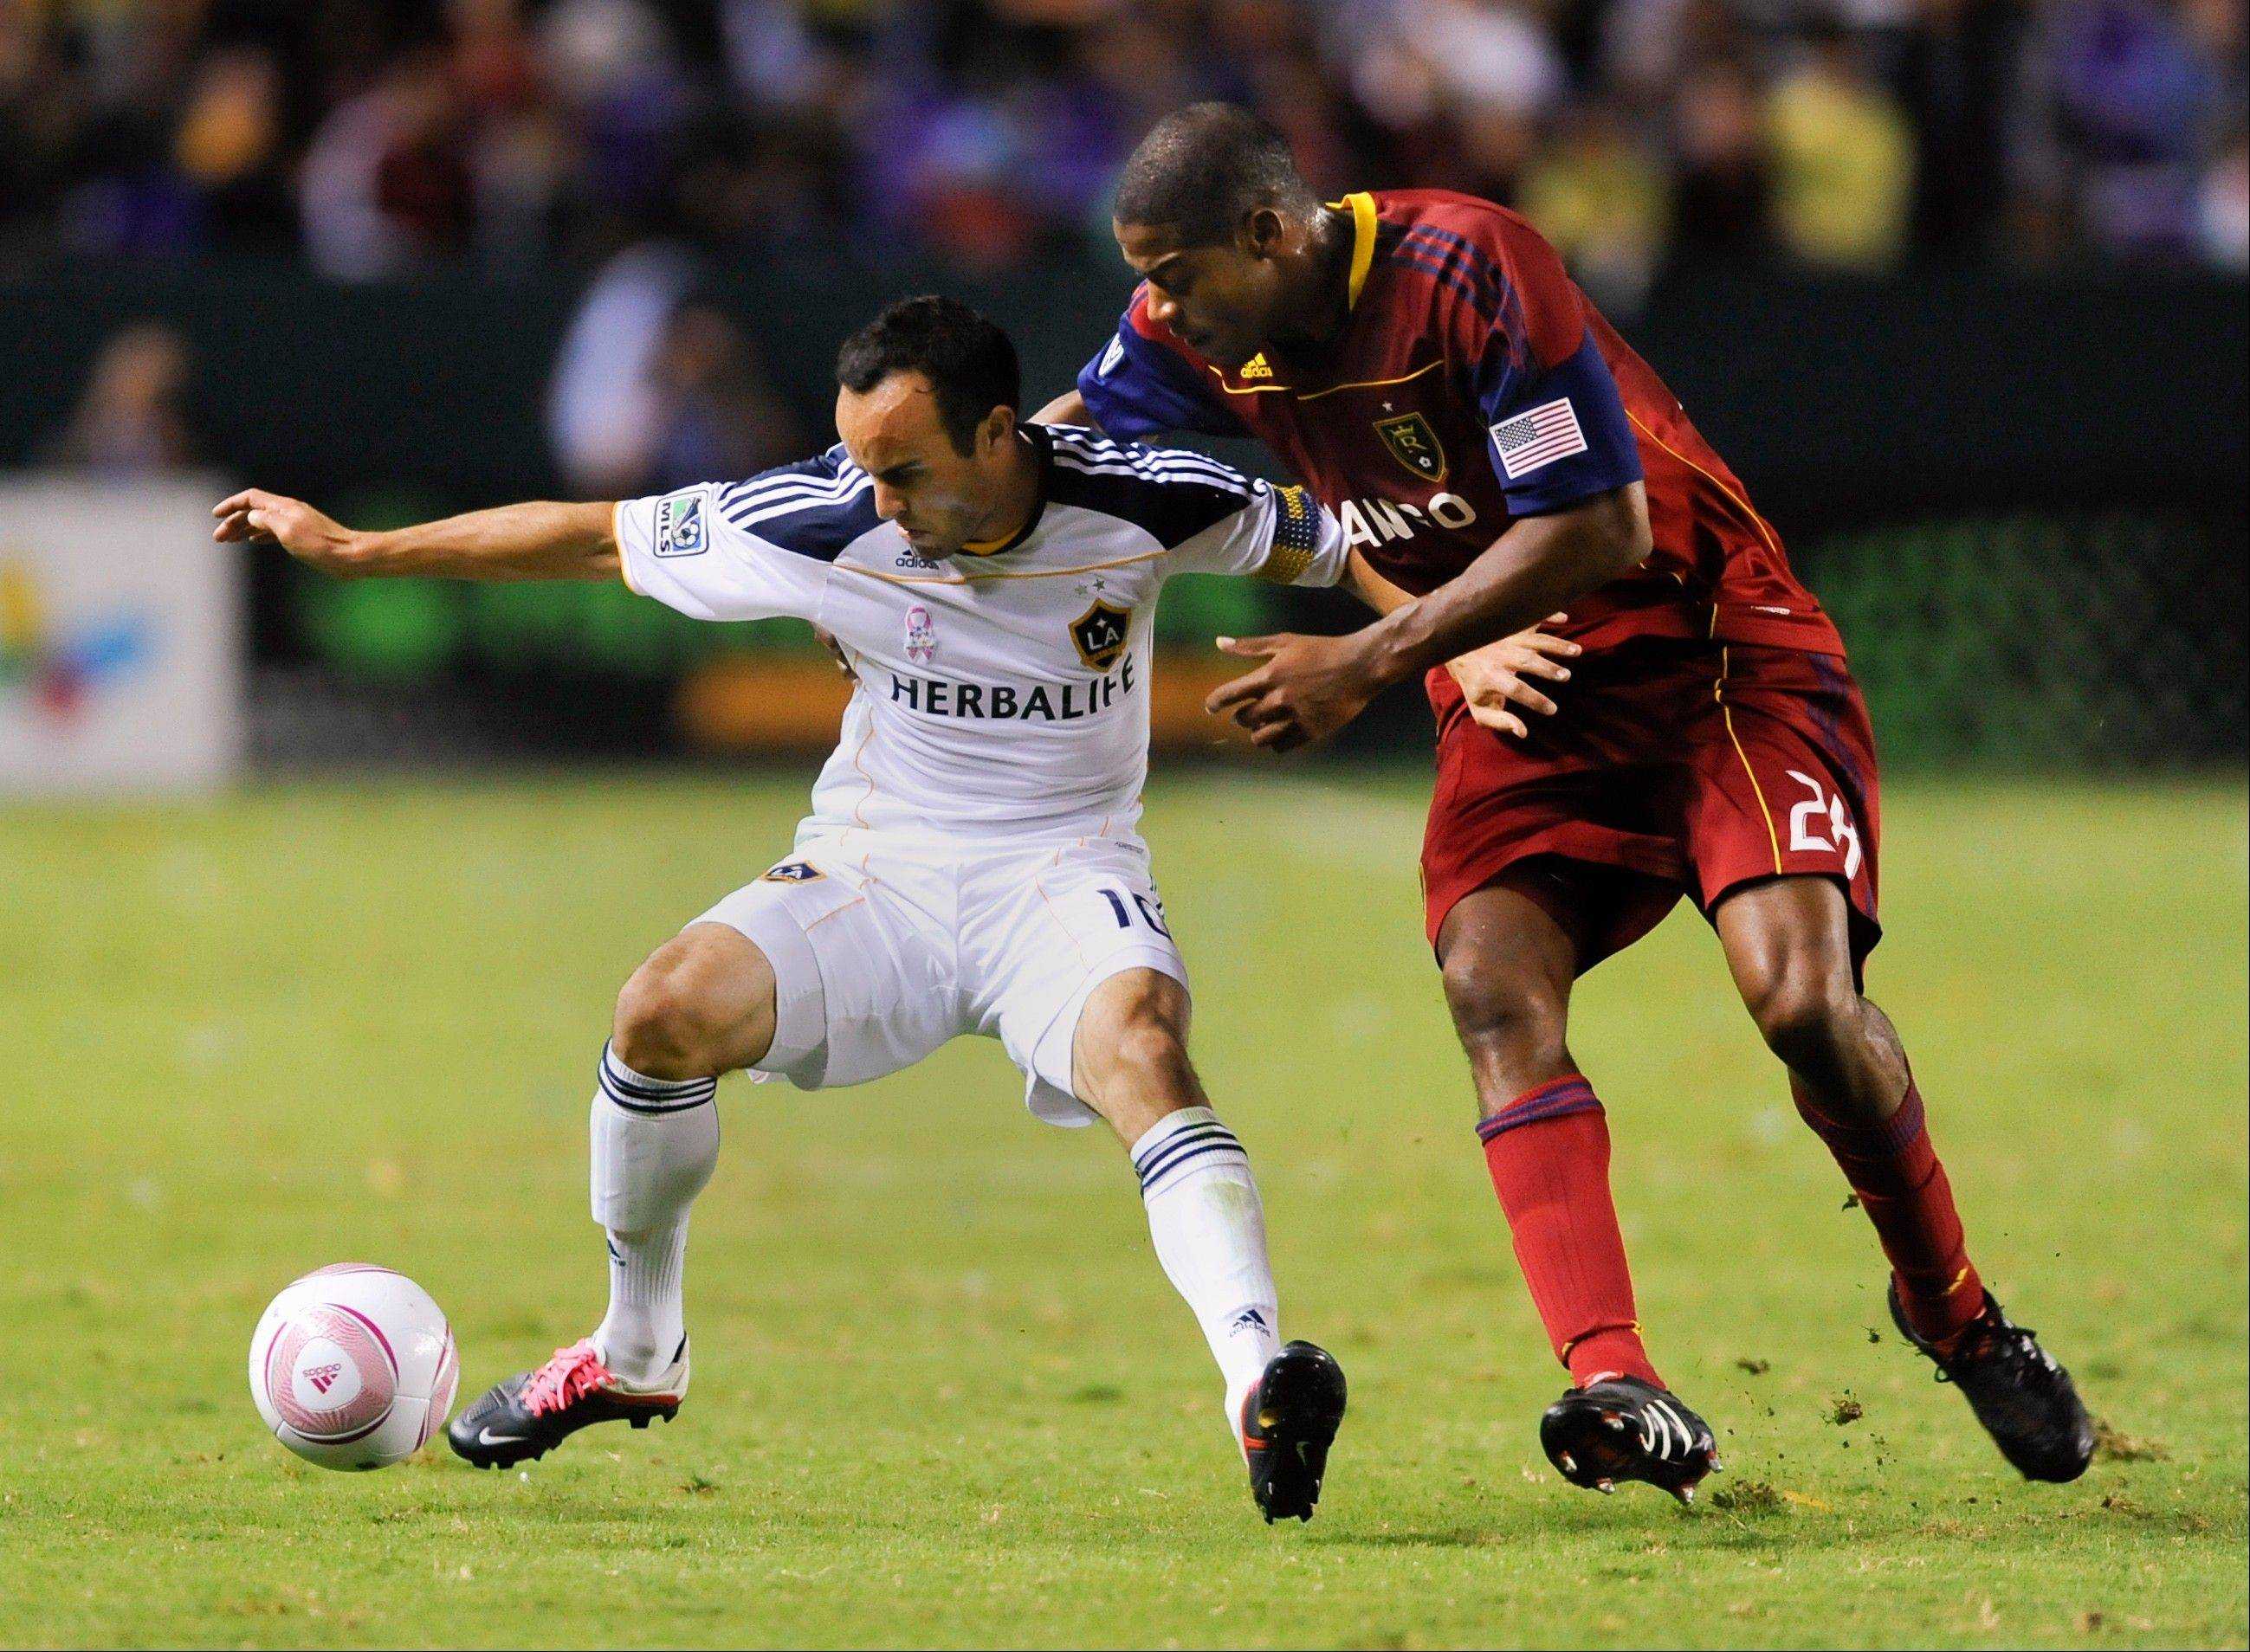 Real Salt Lake defender Chris Schuler, at right trying to control the Galaxy's Landon Donovan, has helped anchor the back line for RSL this season.